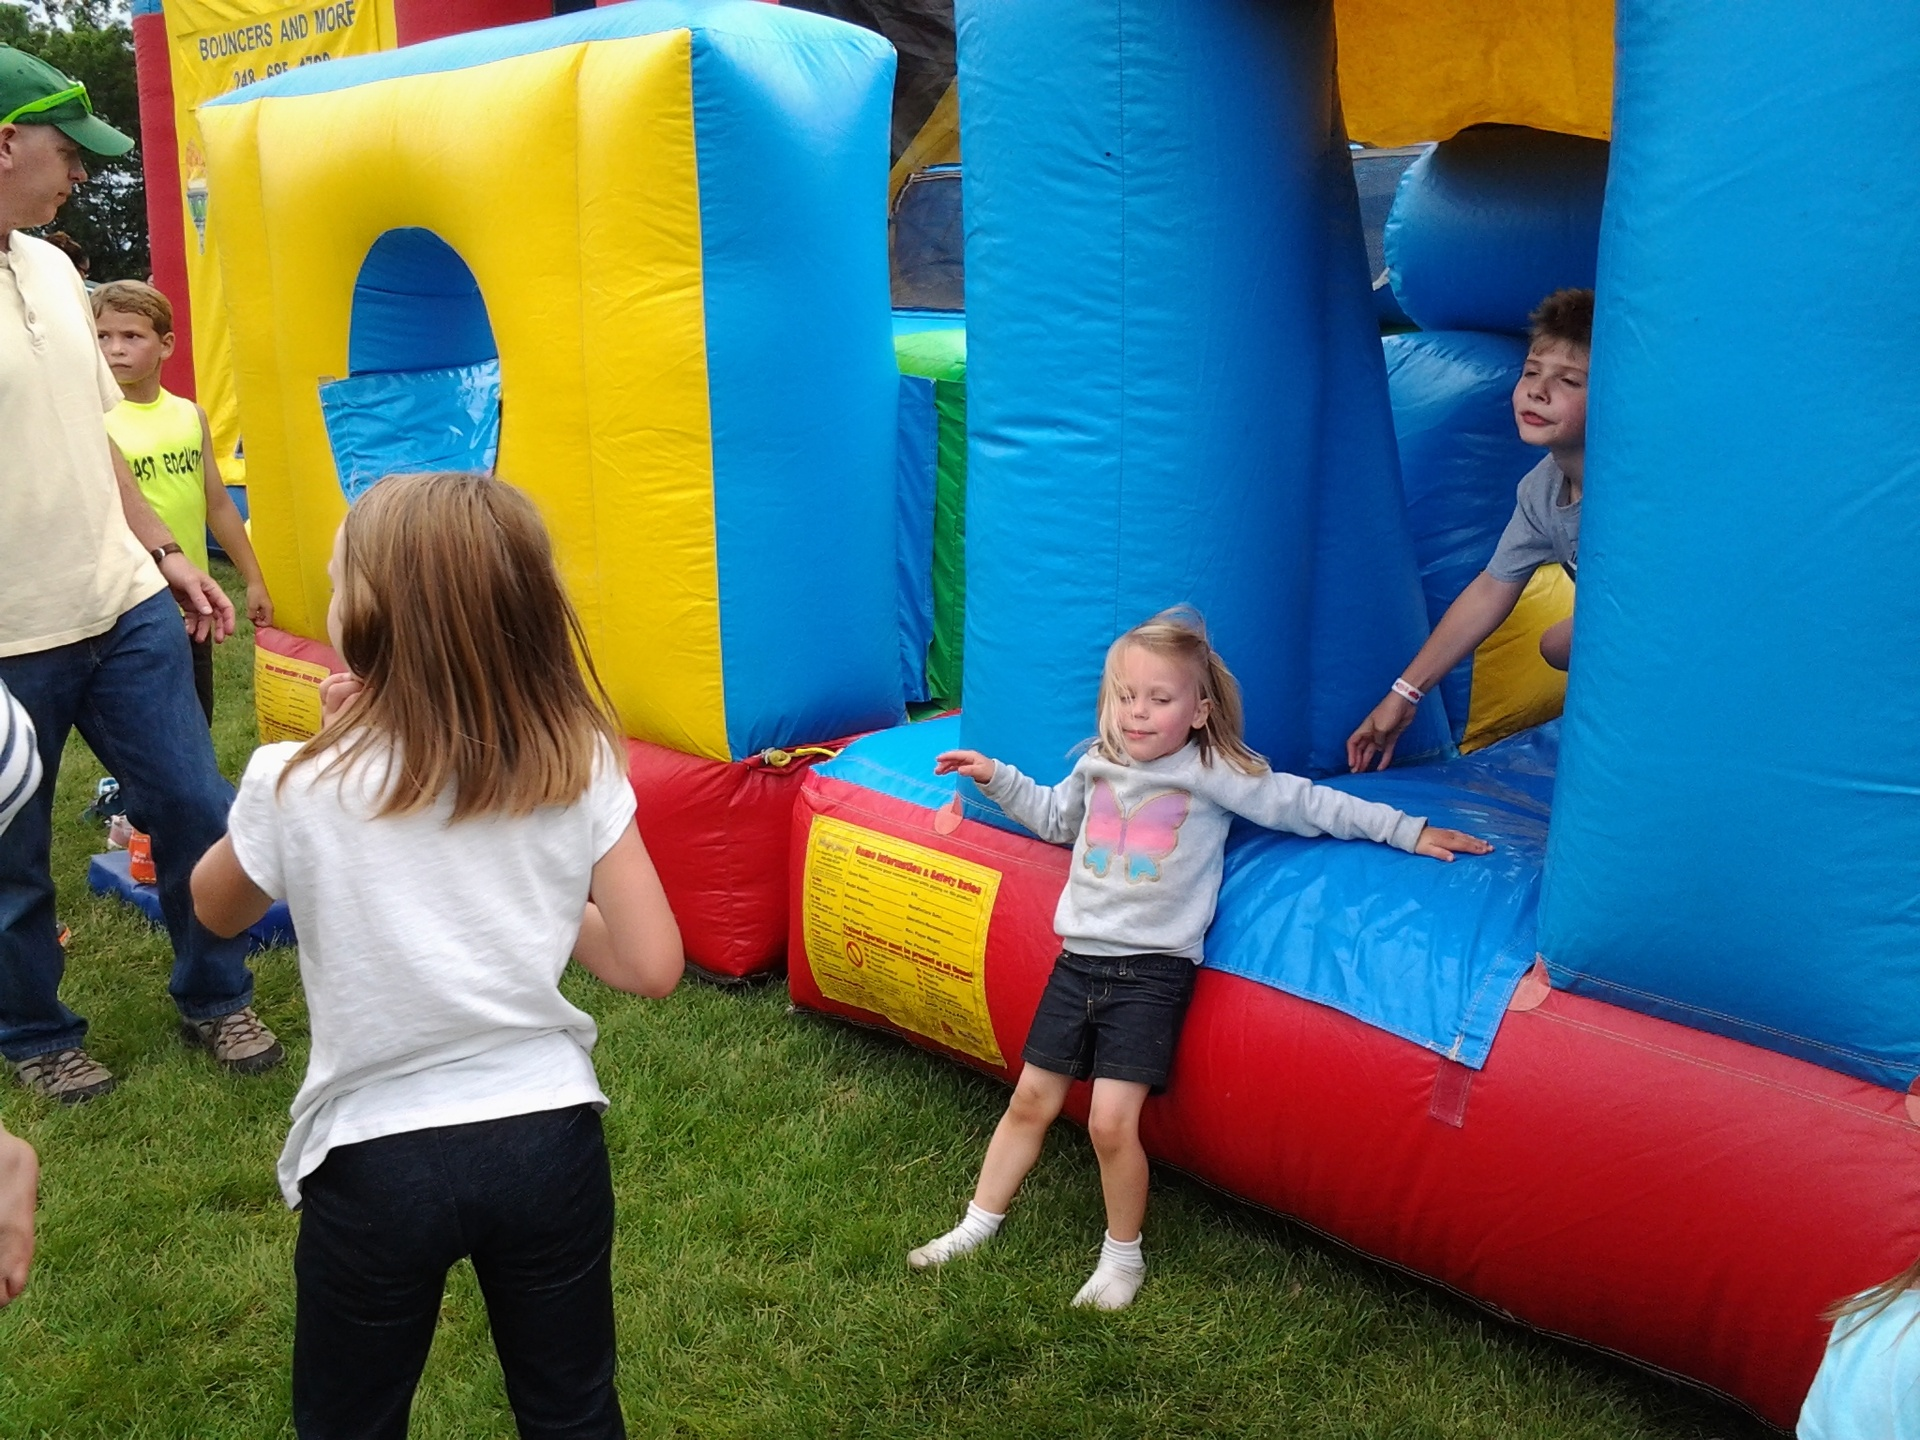 Inflatables provided fun for the kids.